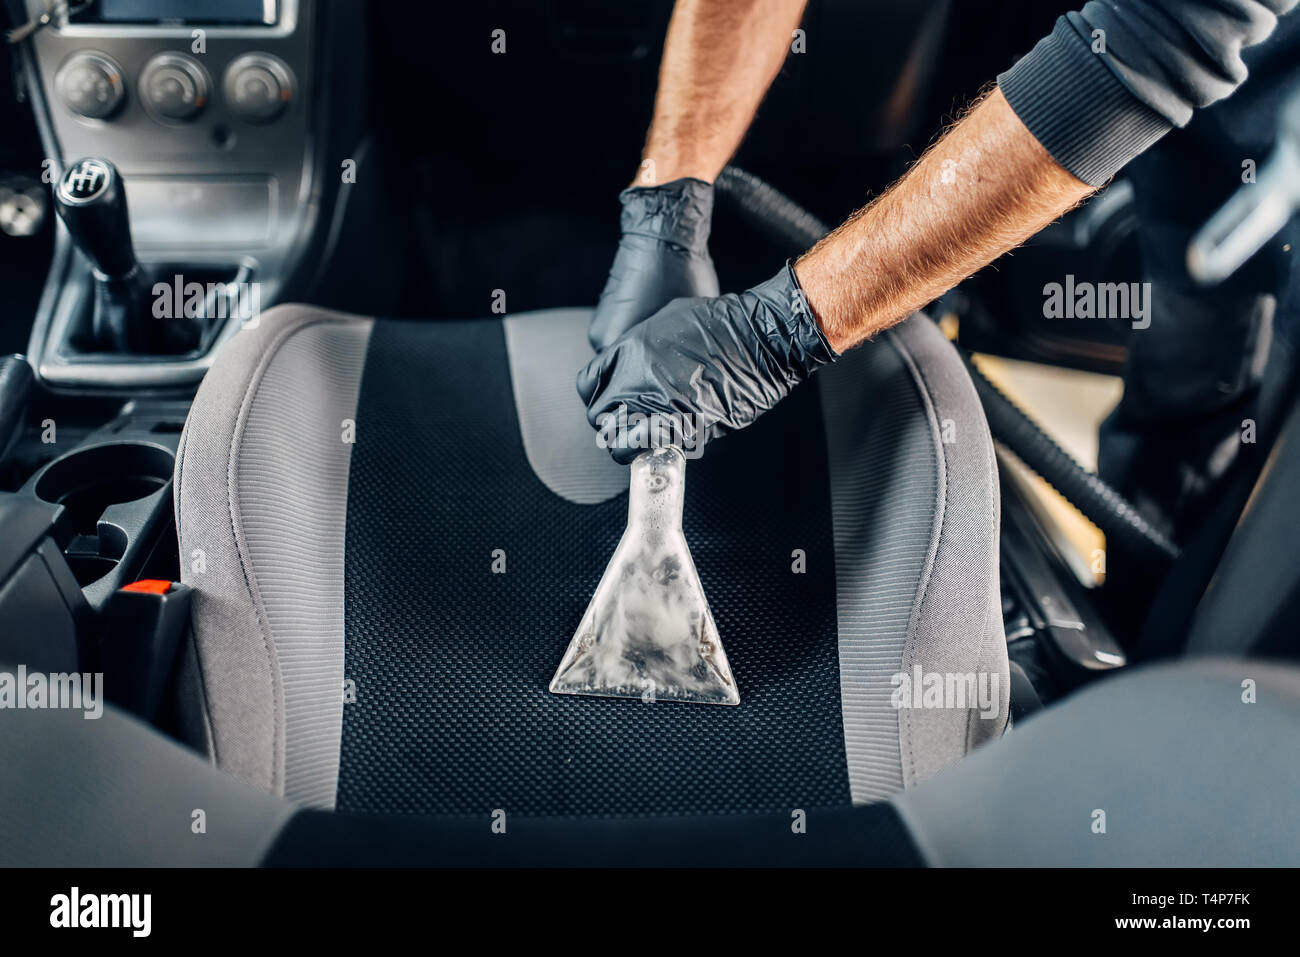 Professional Dry Cleaning Of Car Interior With Vacuum Cleaner